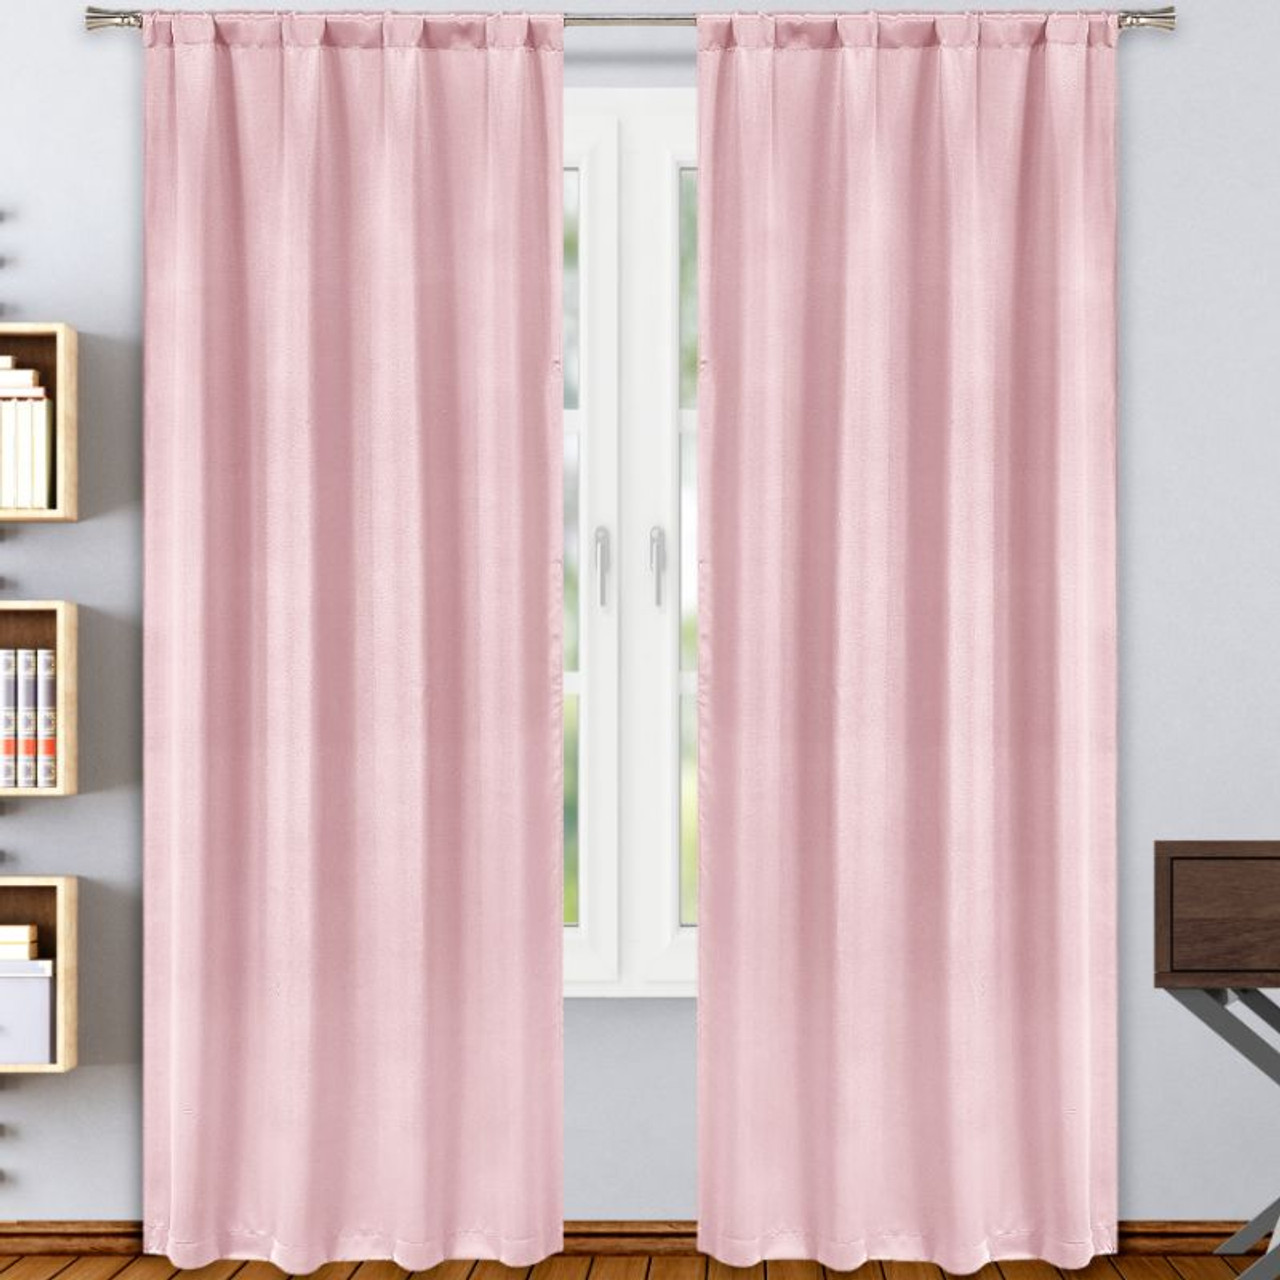 """Solid Blackout Window Curtain Panels for Poles, 38""""x84"""" - 2 Pack"""